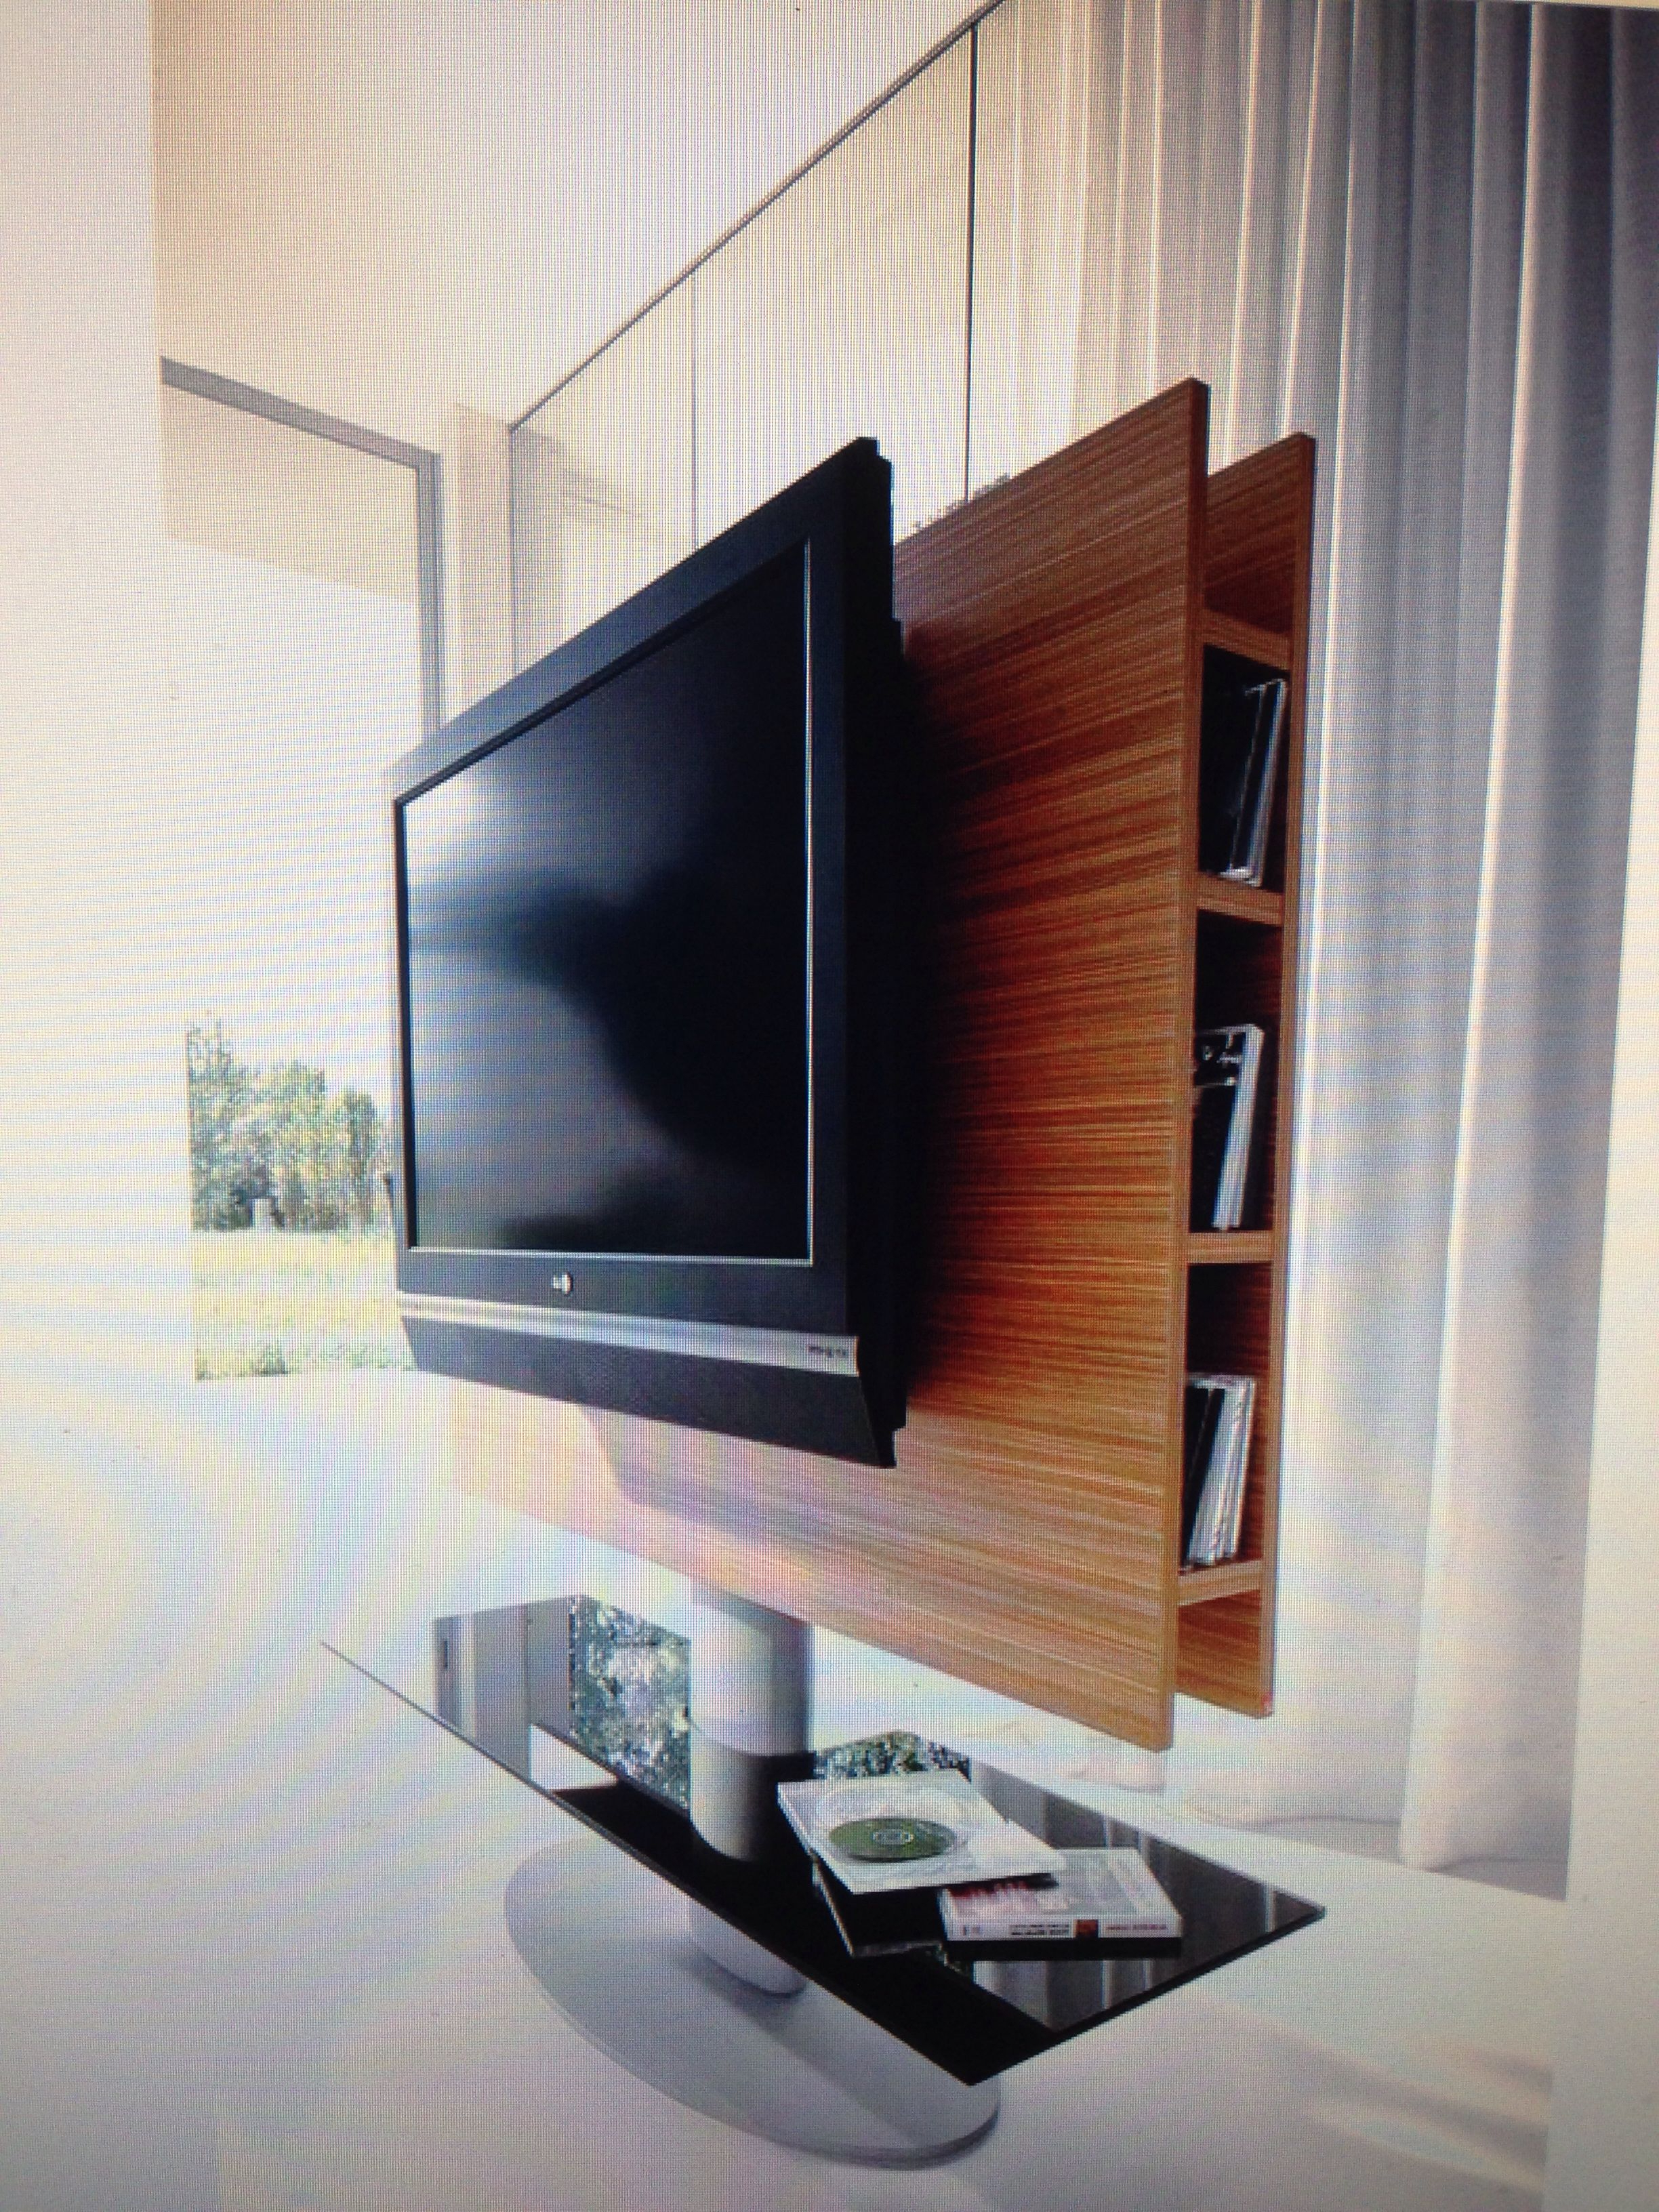 Swivel Tv Riser Regarding Preferred Furniture: Exciting Swivel Tv Stand For Your Living Room — Iqueuesg (View 10 of 20)